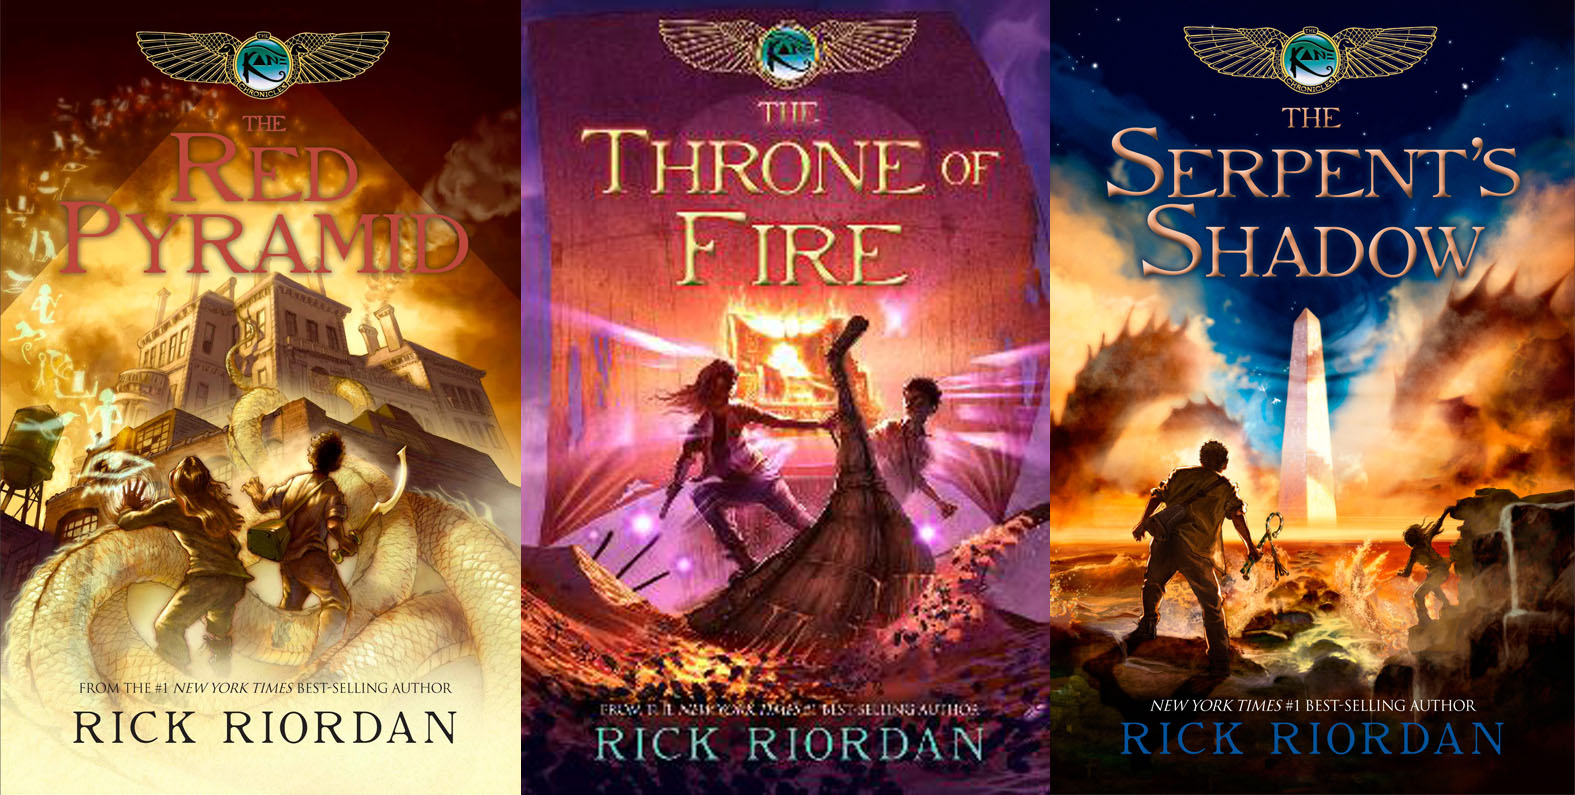 Review: The Kane Chronicles by Rick Riordan – Heart Full of Books